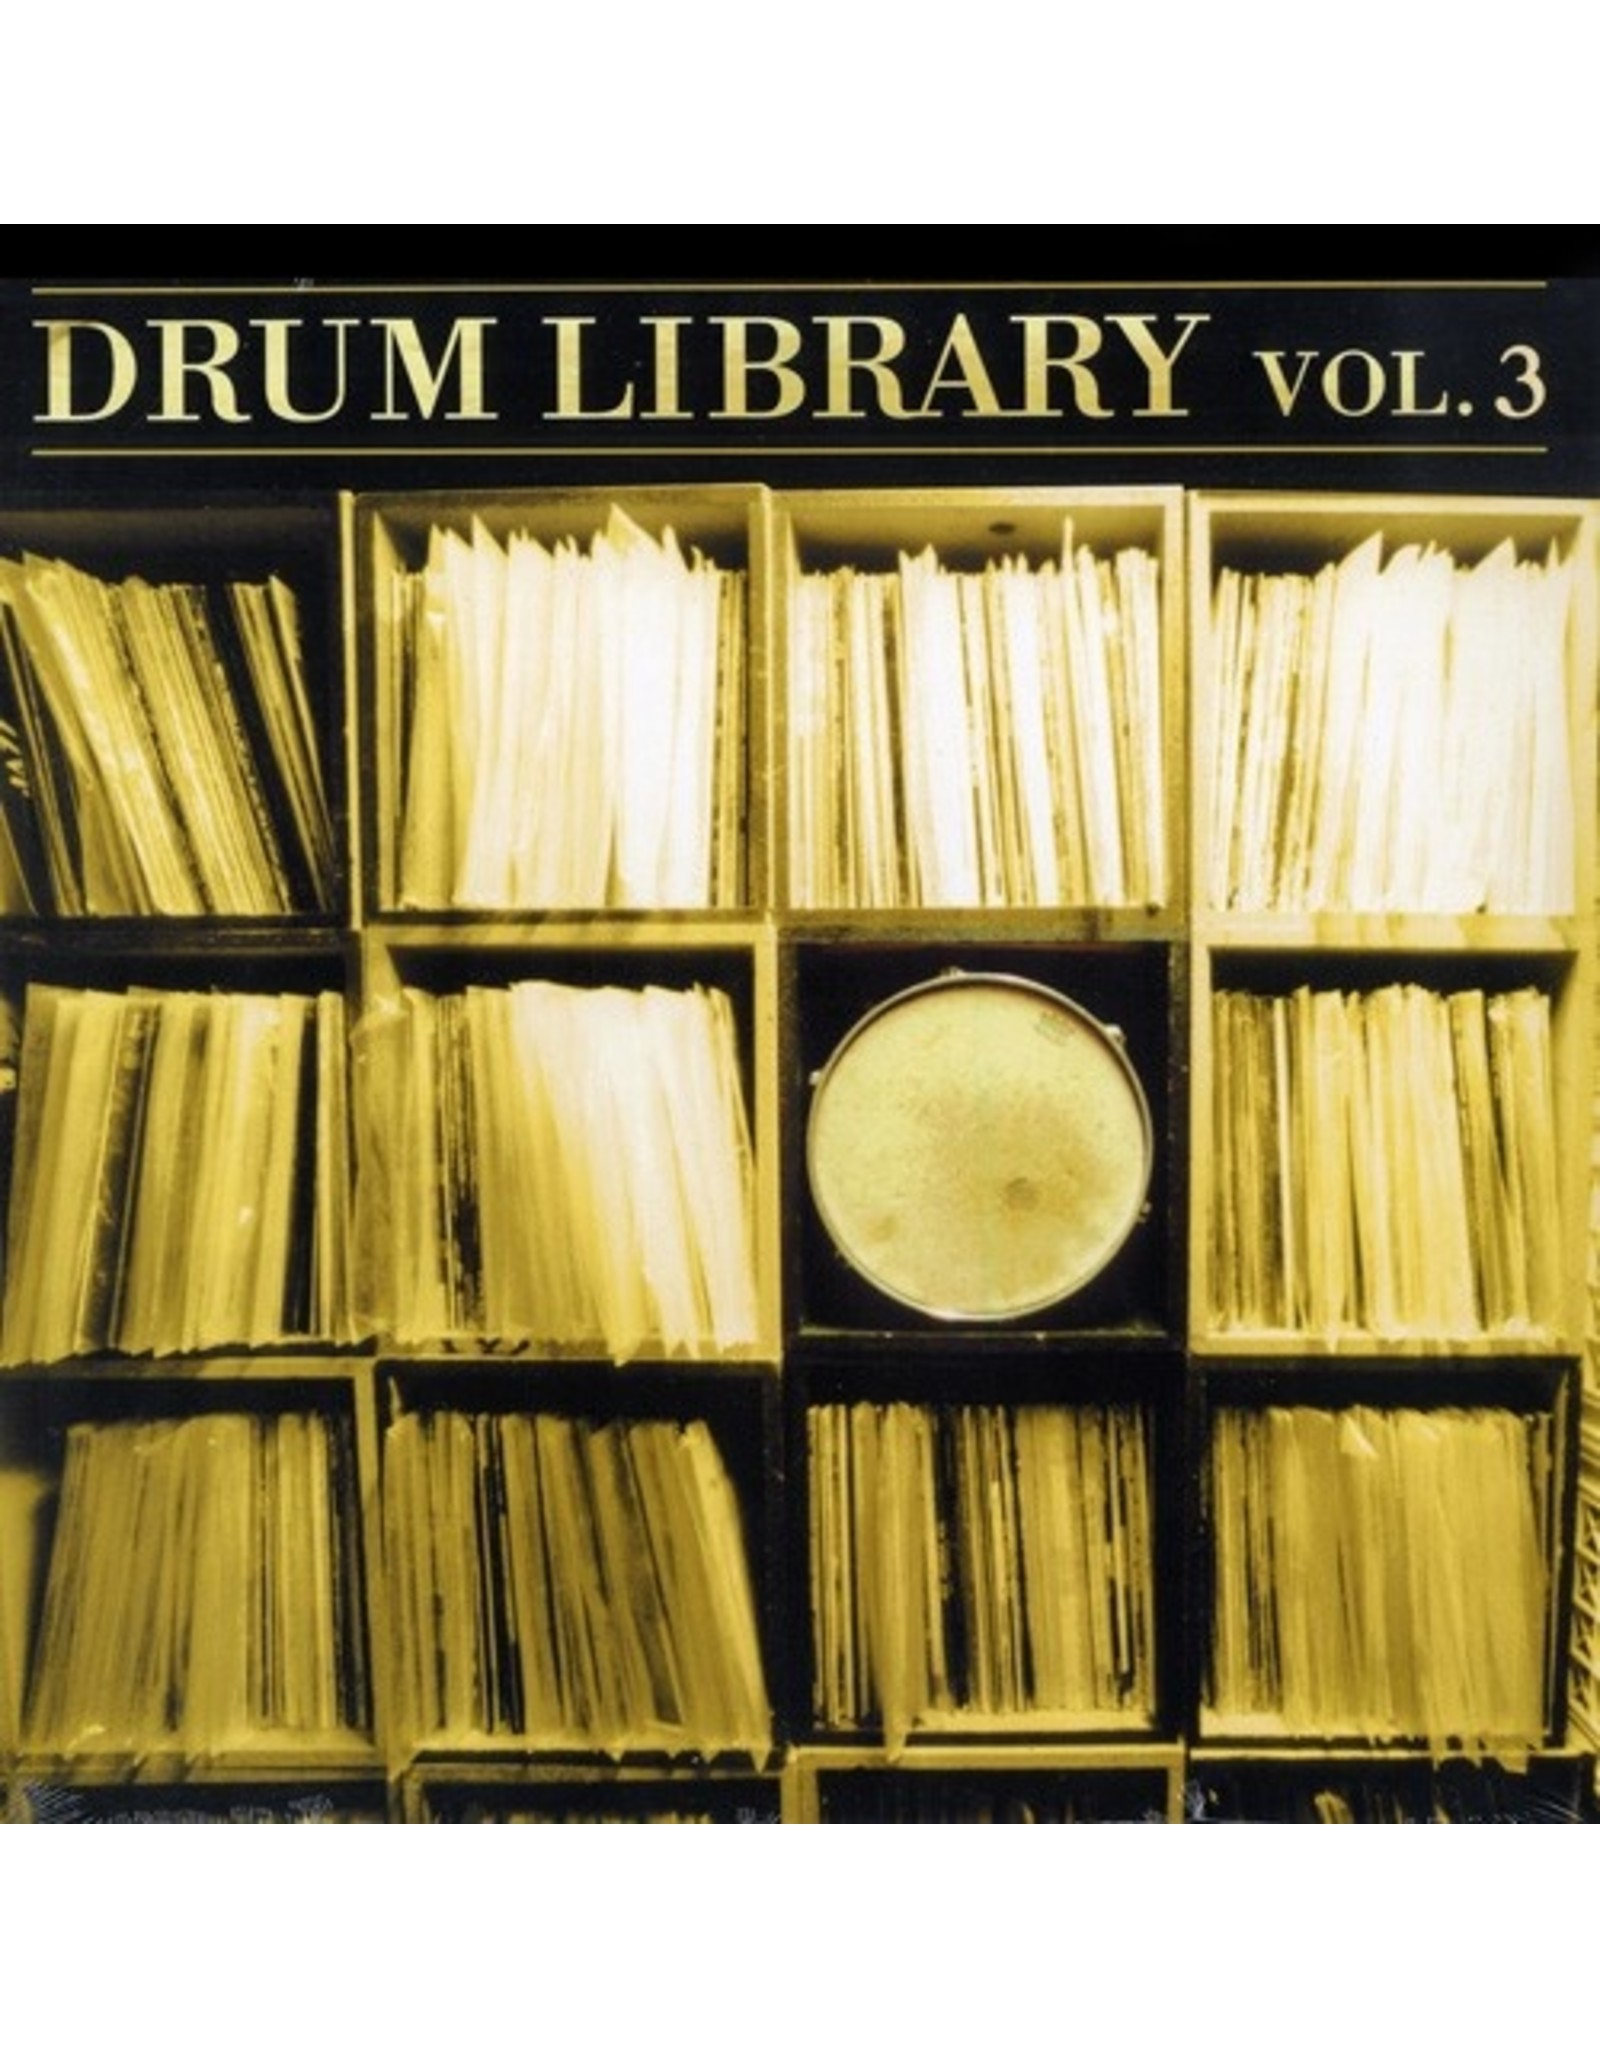 New Vinyl DJ Paul Nice - Drum Library Vol. 3 LP